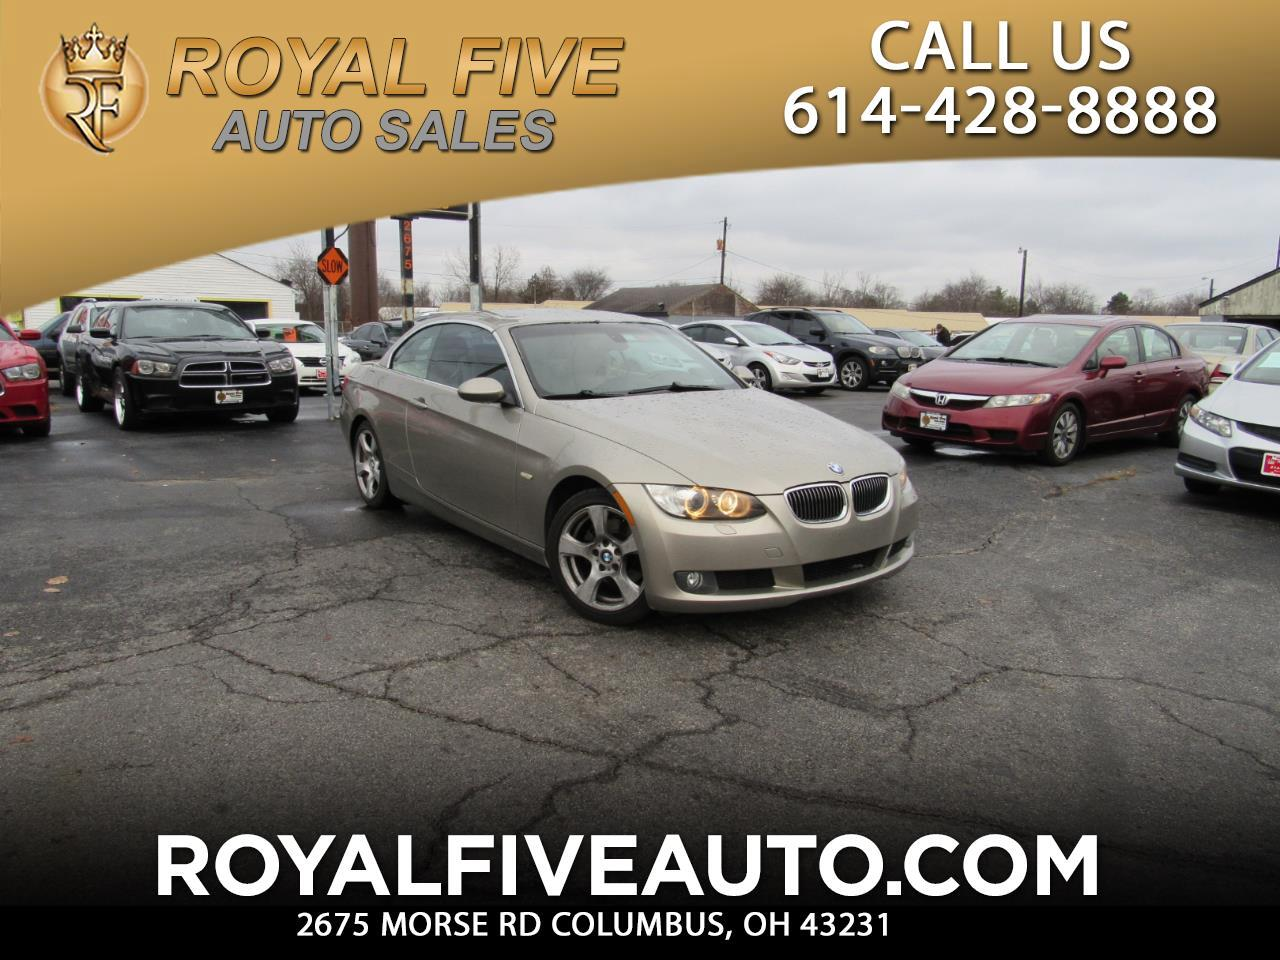 Used Cars for Sale COLUMBUS OH 43231 Royal Five Auto Sales